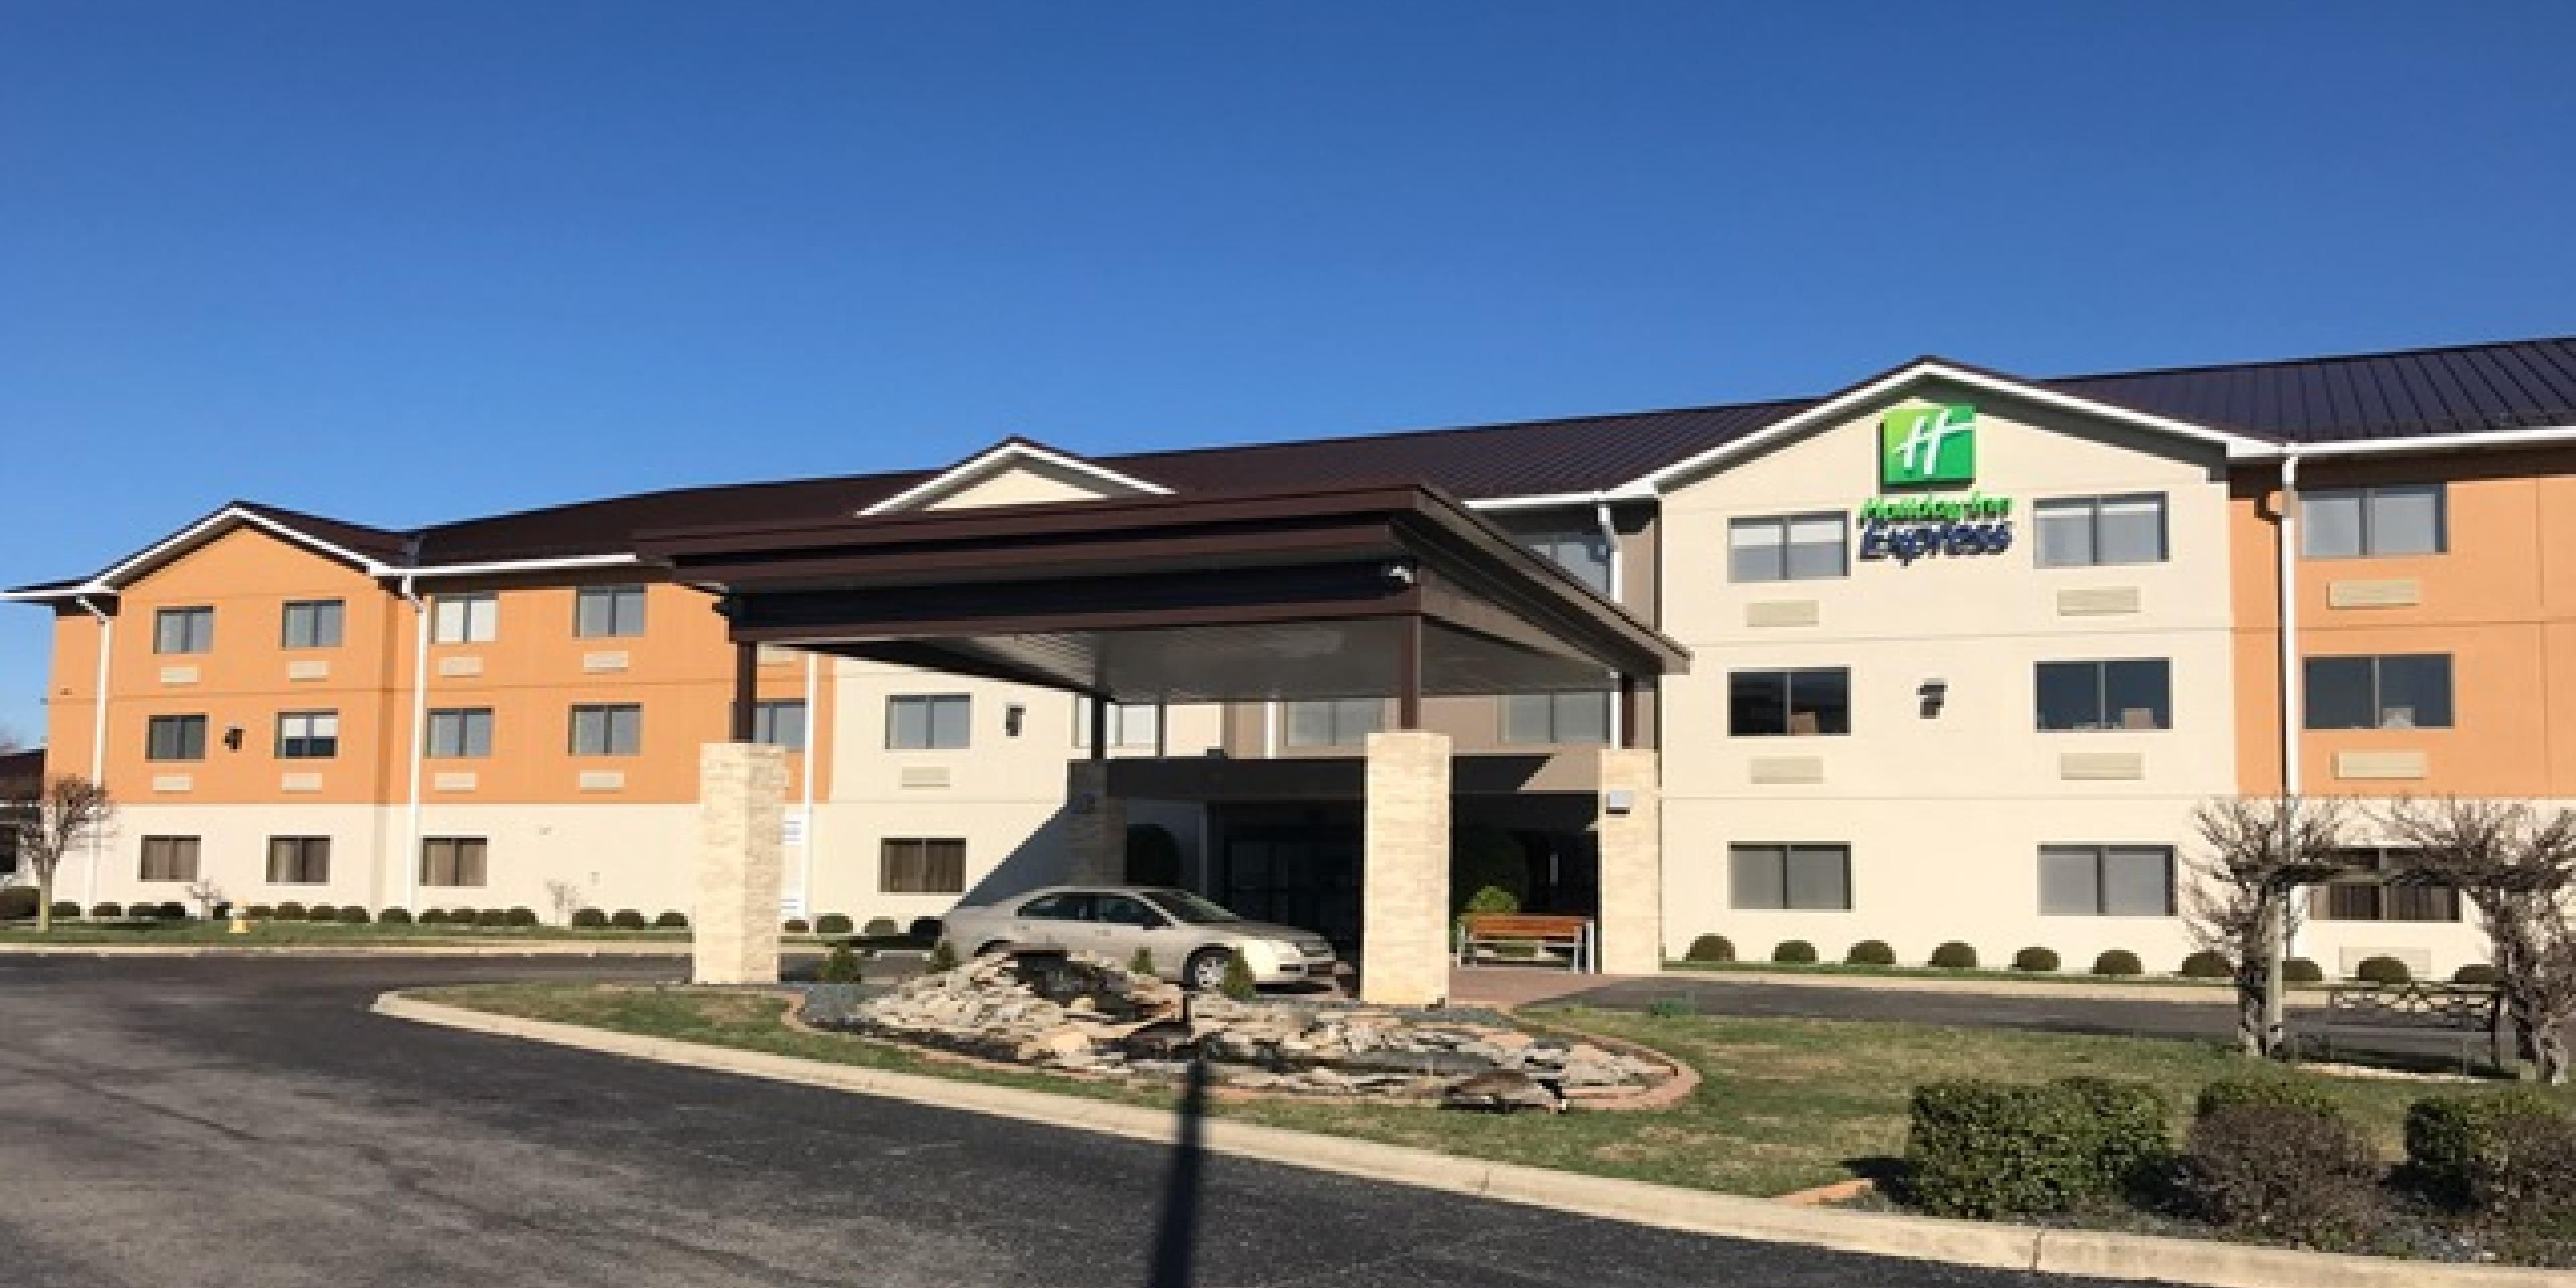 Crib for sale louisville ky - Holiday Inn Express Louisville 4903309047 2x1